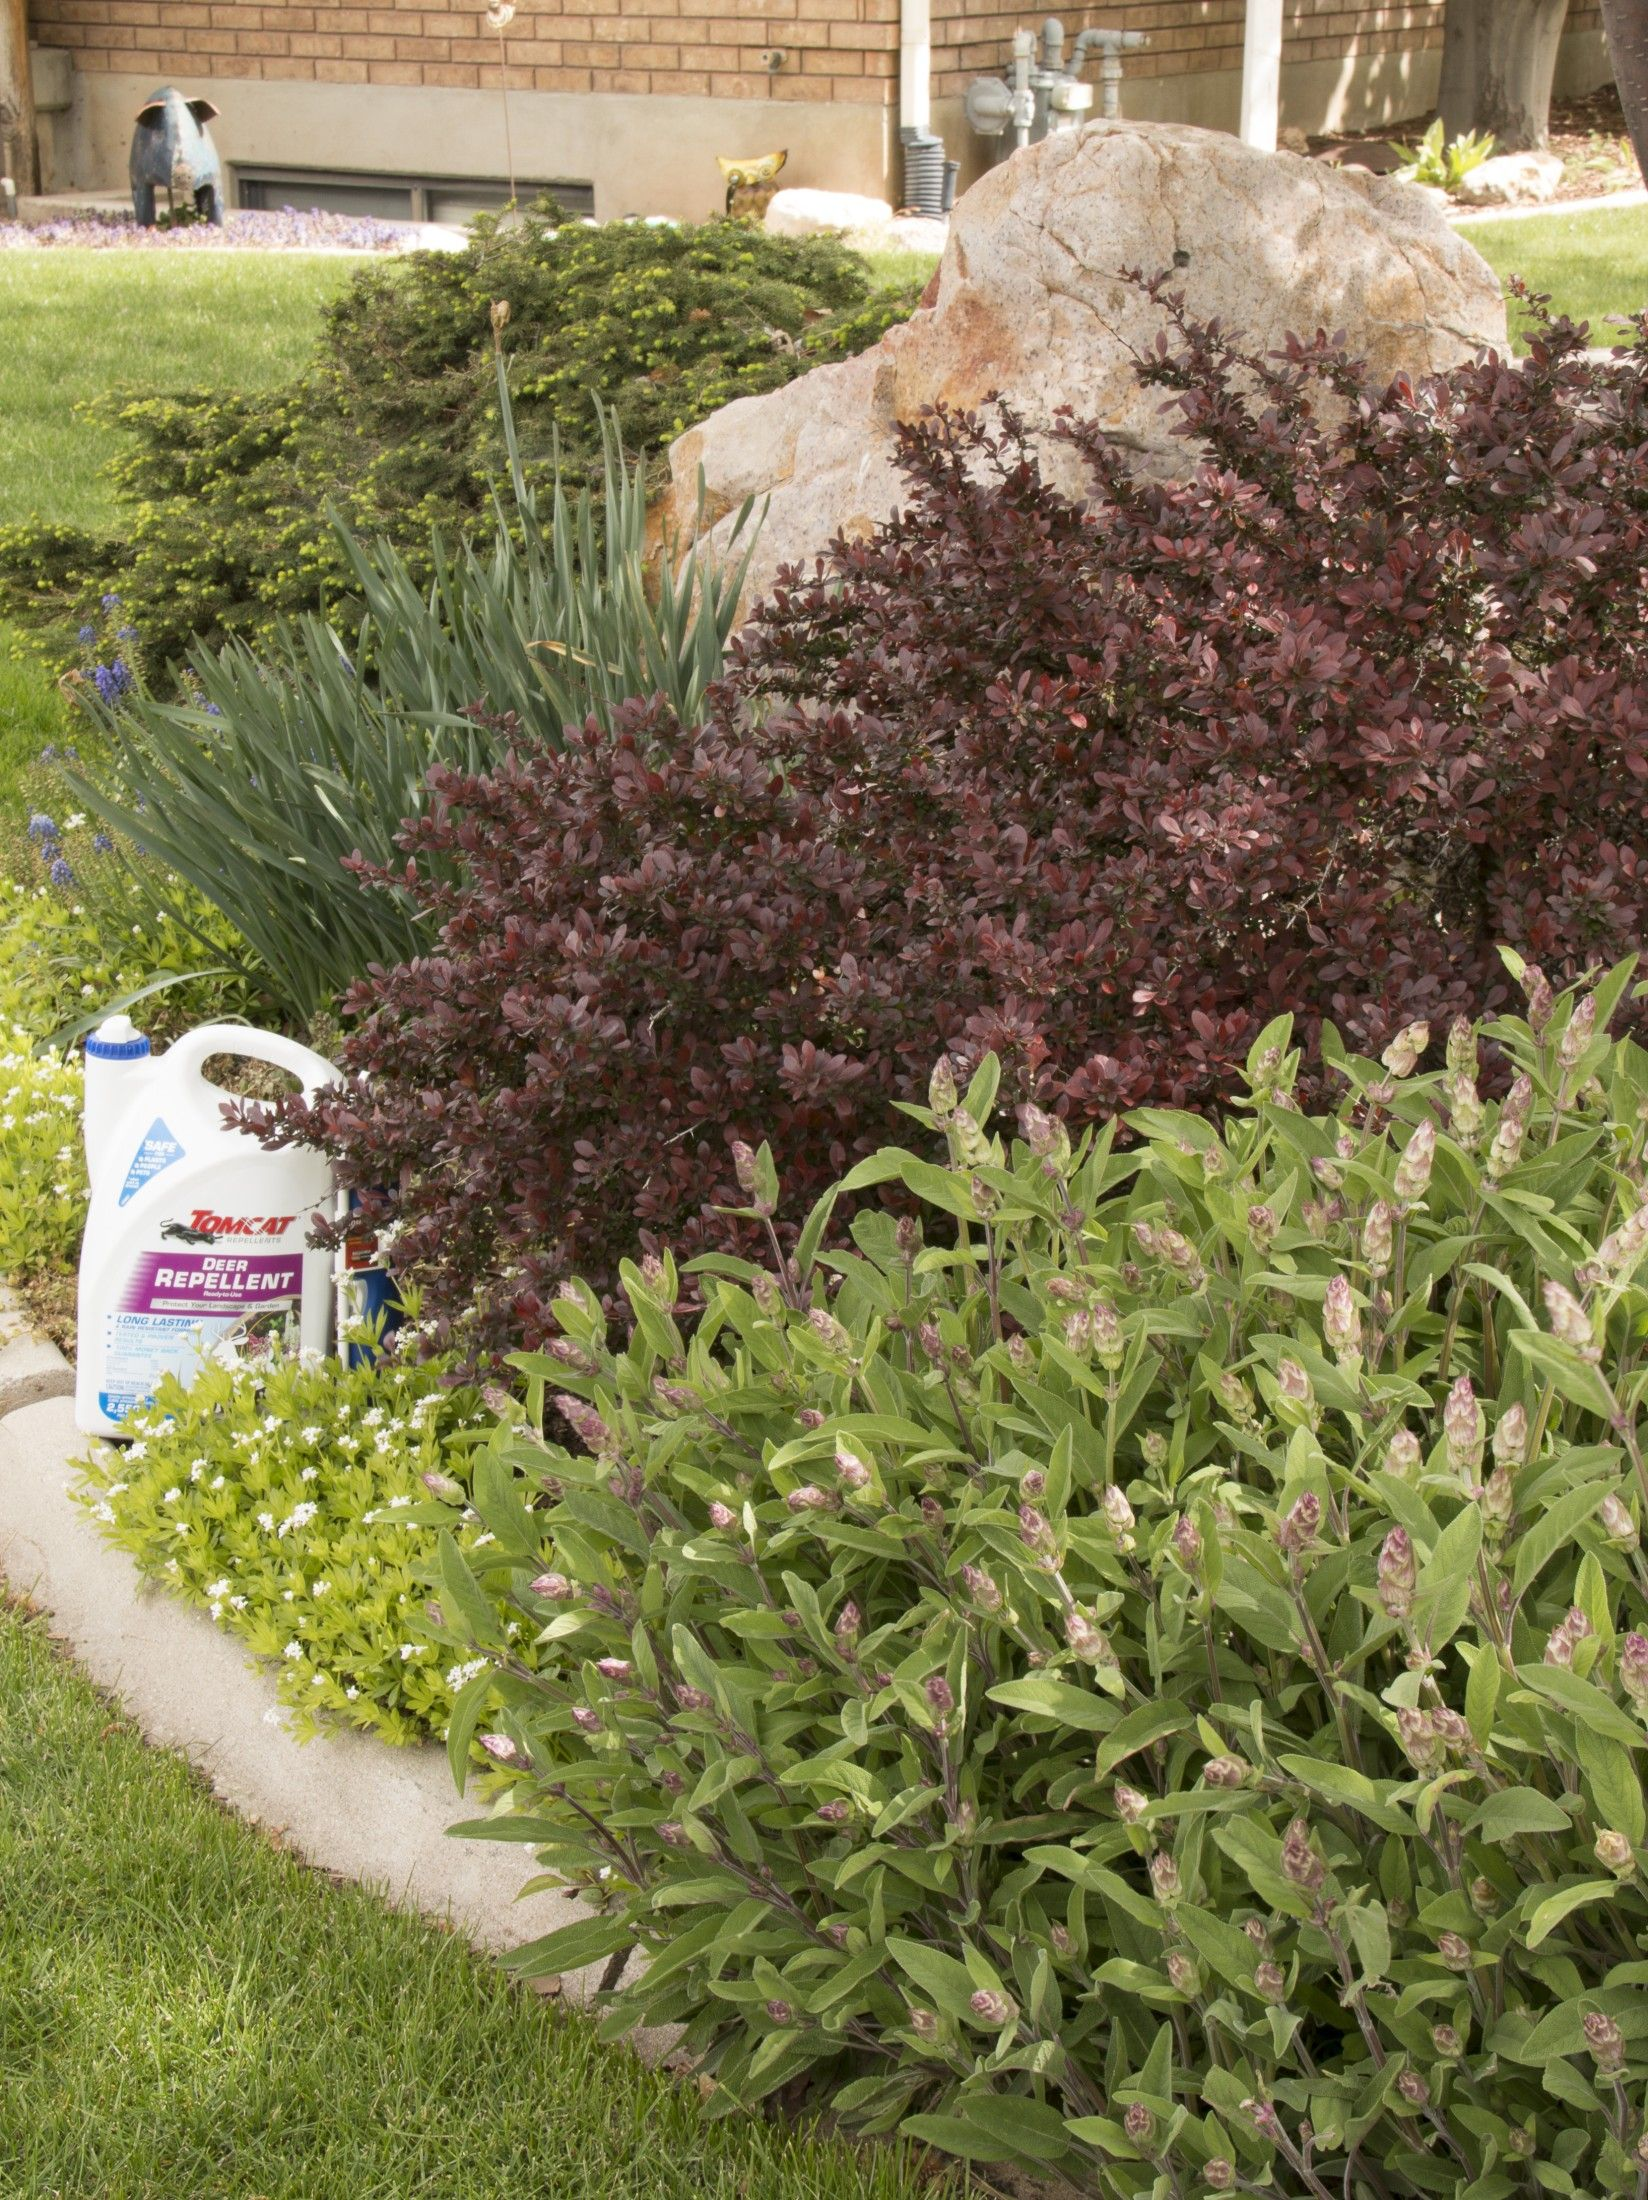 deer repellent for gardens. [ad] Spring Is In Full Bloom! The Last Thing We Want For Deer Repellent Gardens